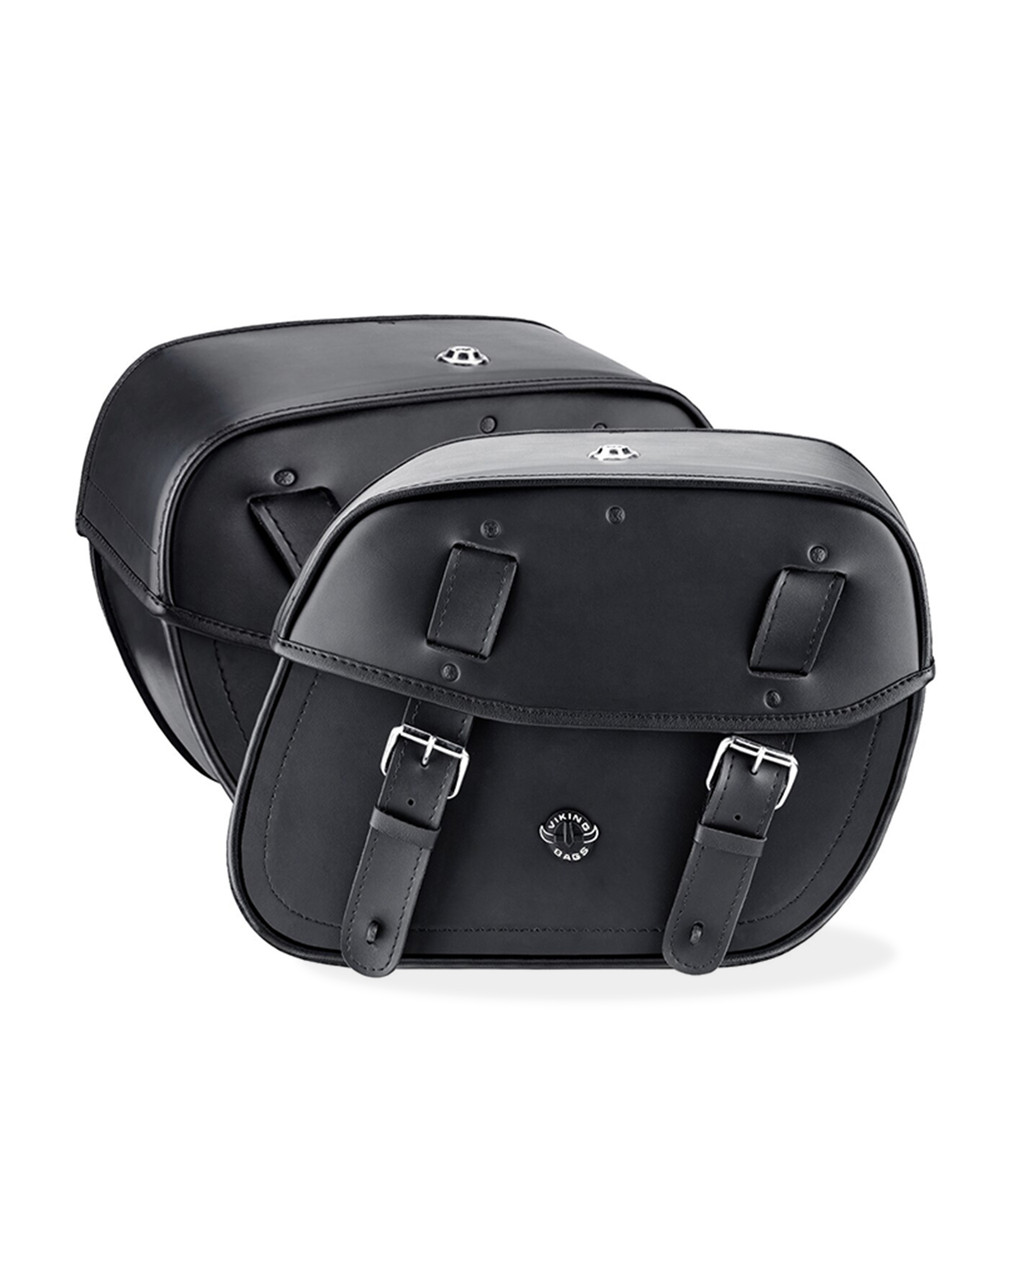 VikingBags Specific Medium Double Strap Shock Cutout Motorcycle Saddlebags For Harley Dyna Street Bob FXDB Both Bags View